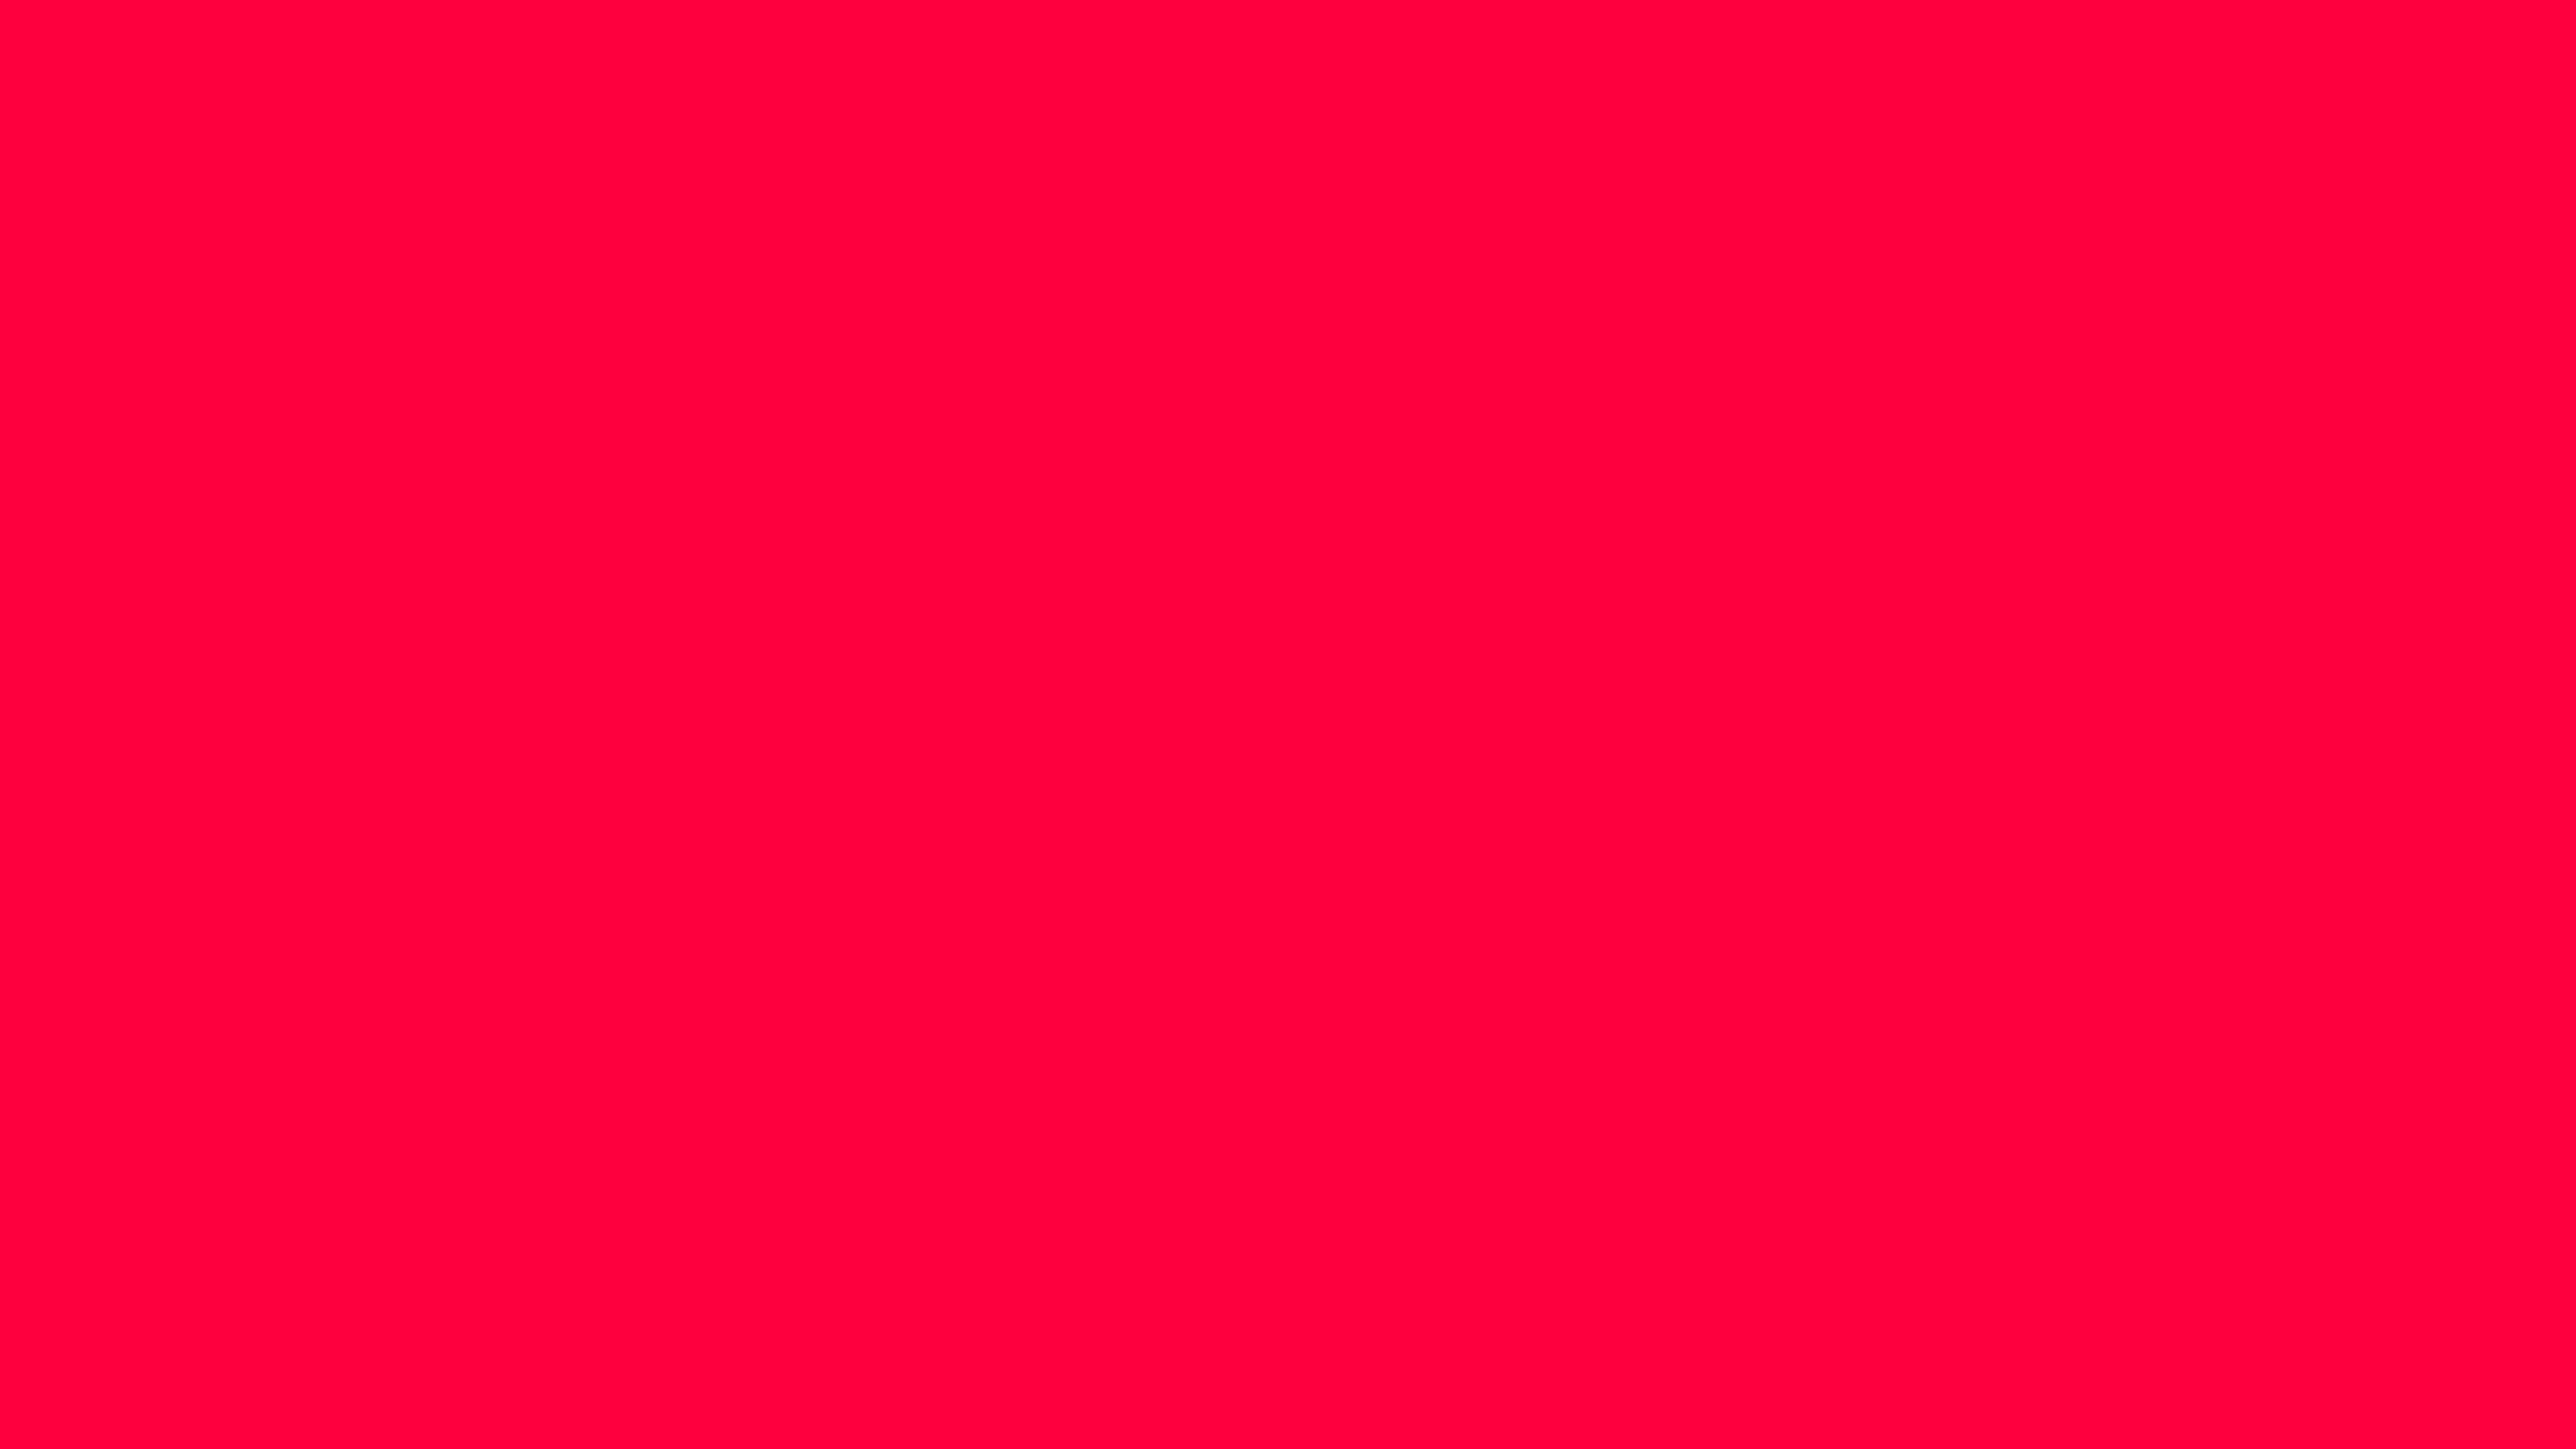 7680x4320 Electric Crimson Solid Color Background